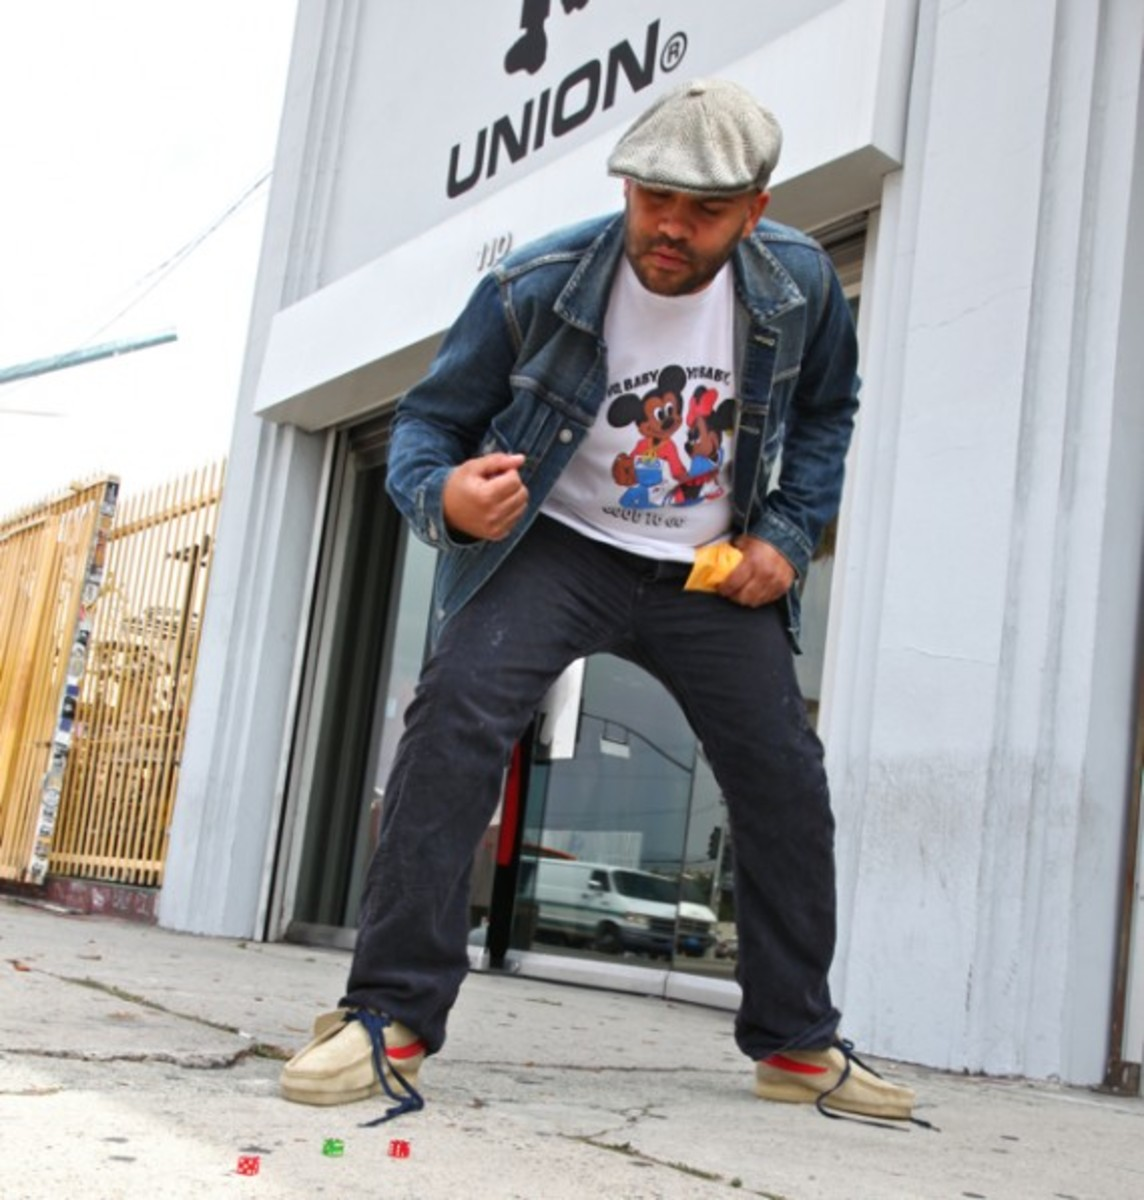 Reggieknow-UNION-Los-Angeles-Mousetrap-13